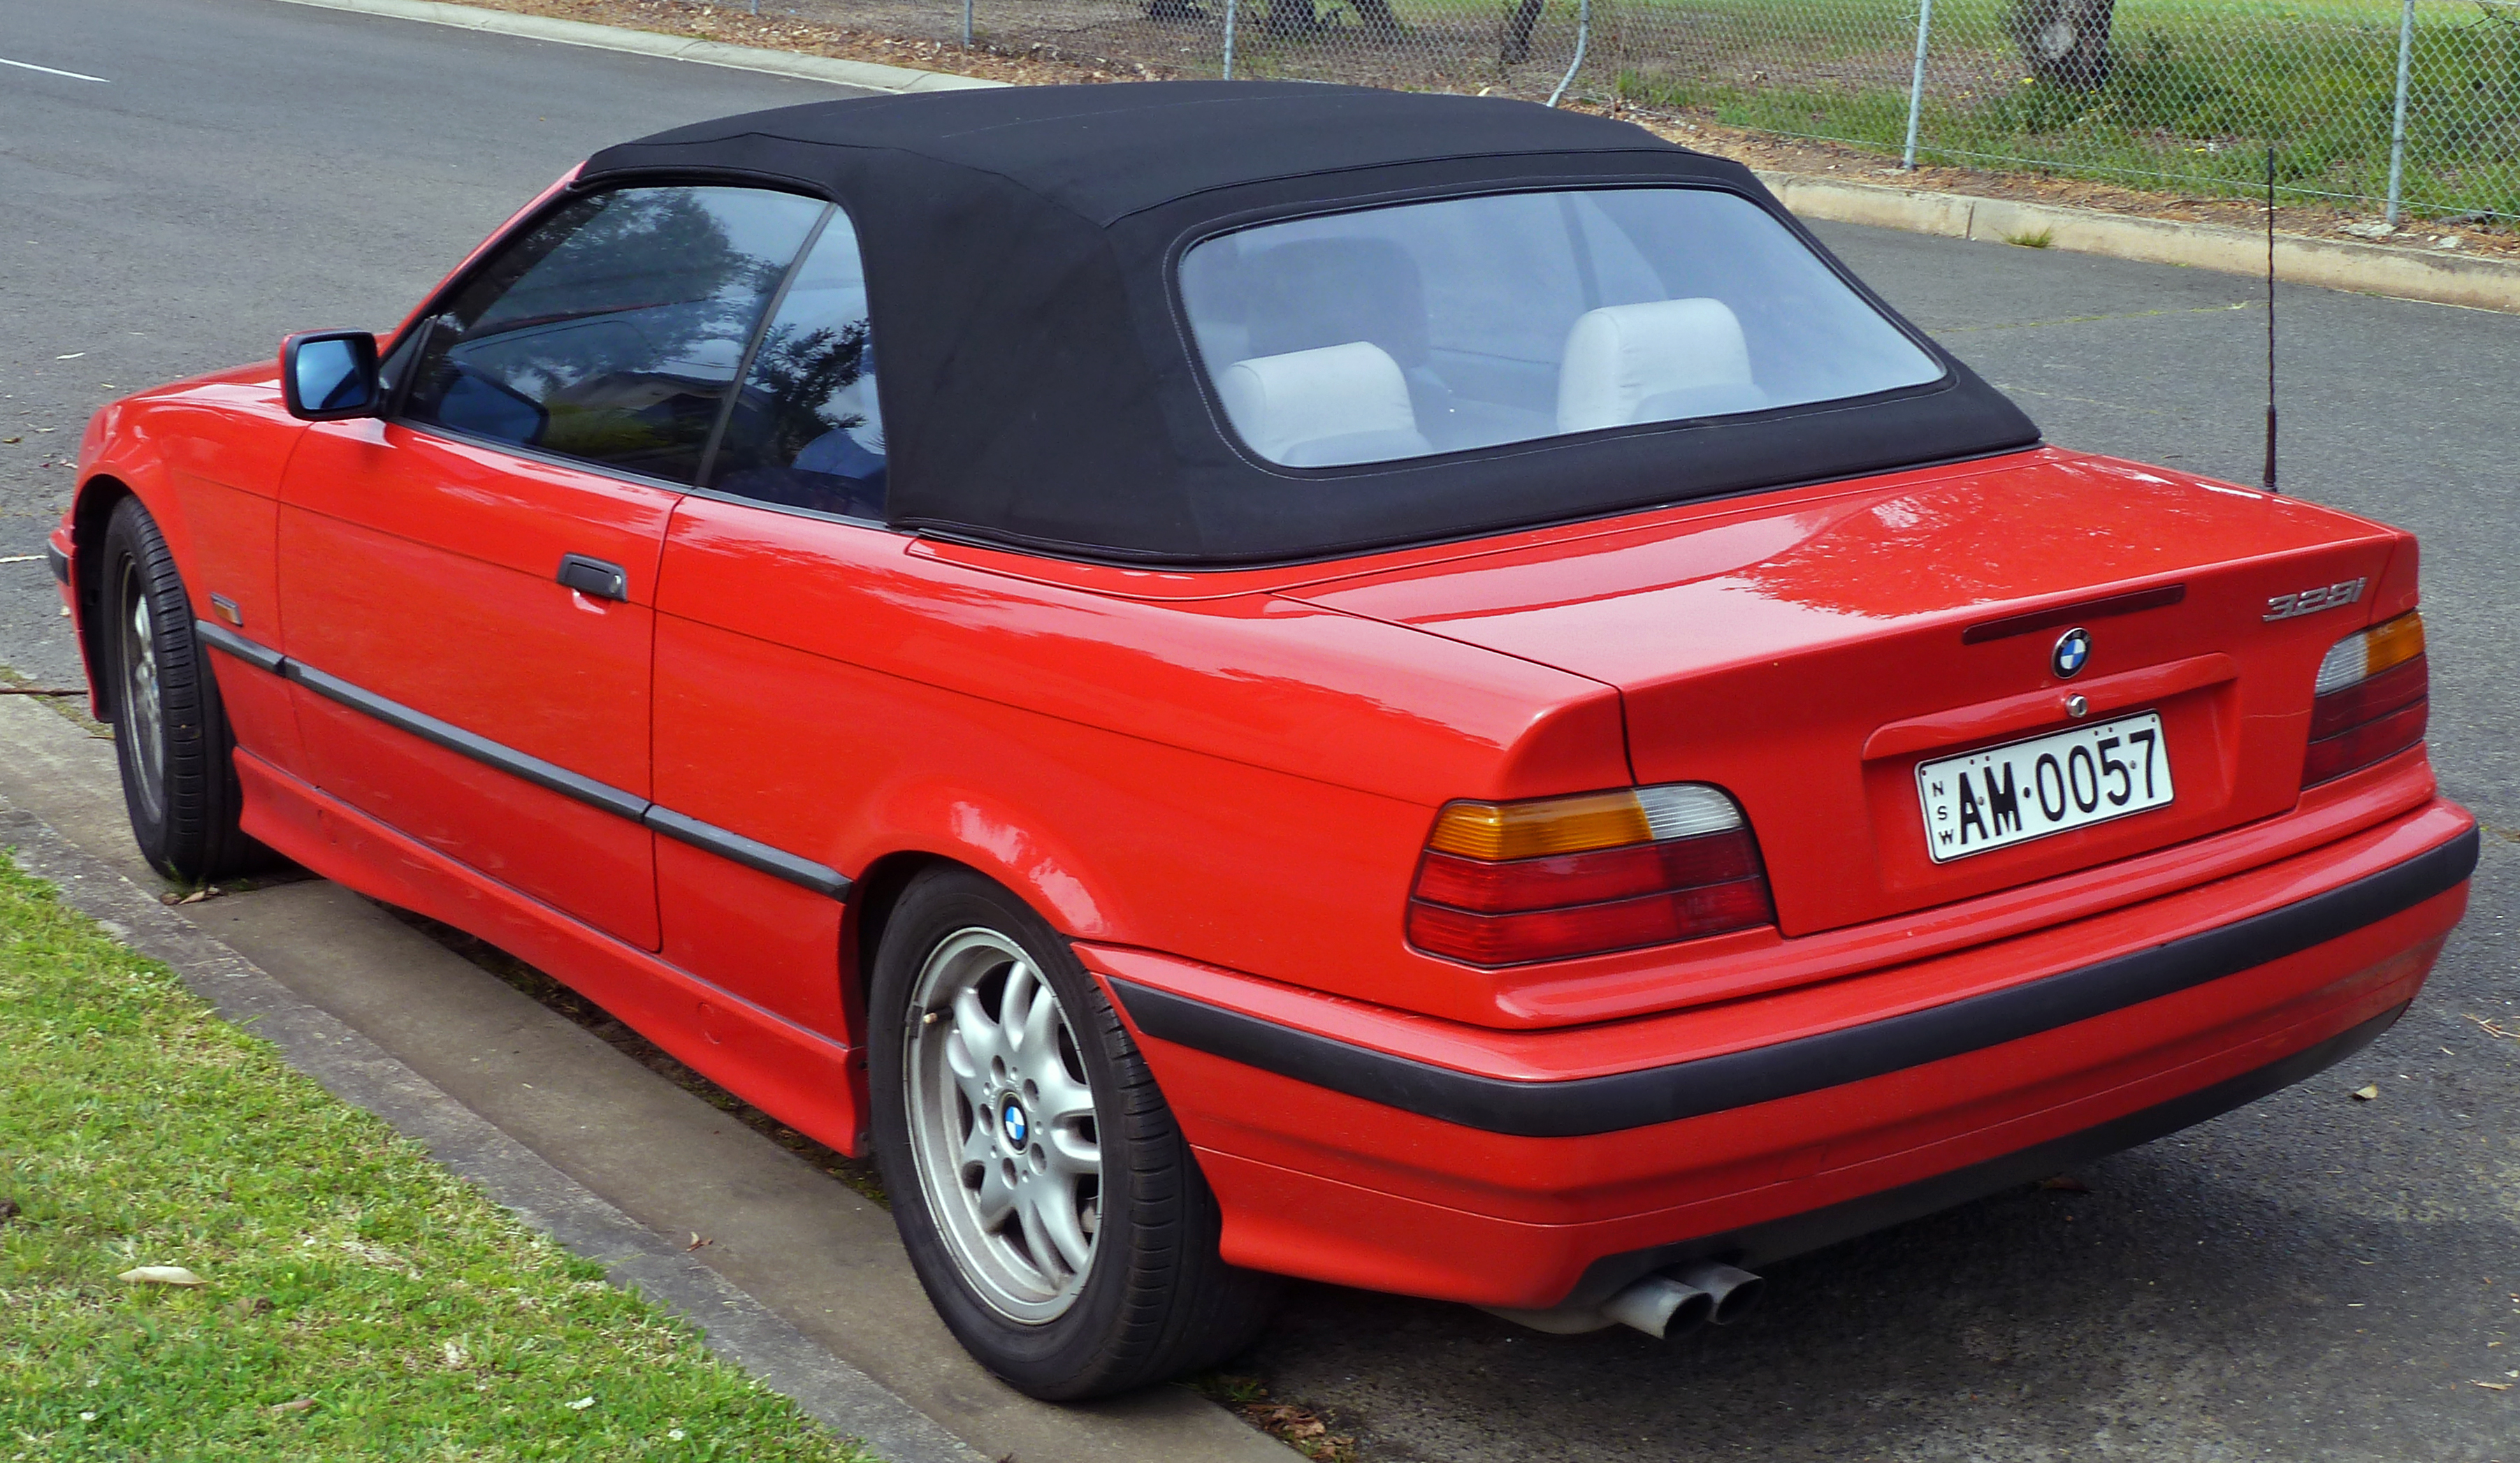 Description 1995 1996 BMW 328i (E36) convertible 02